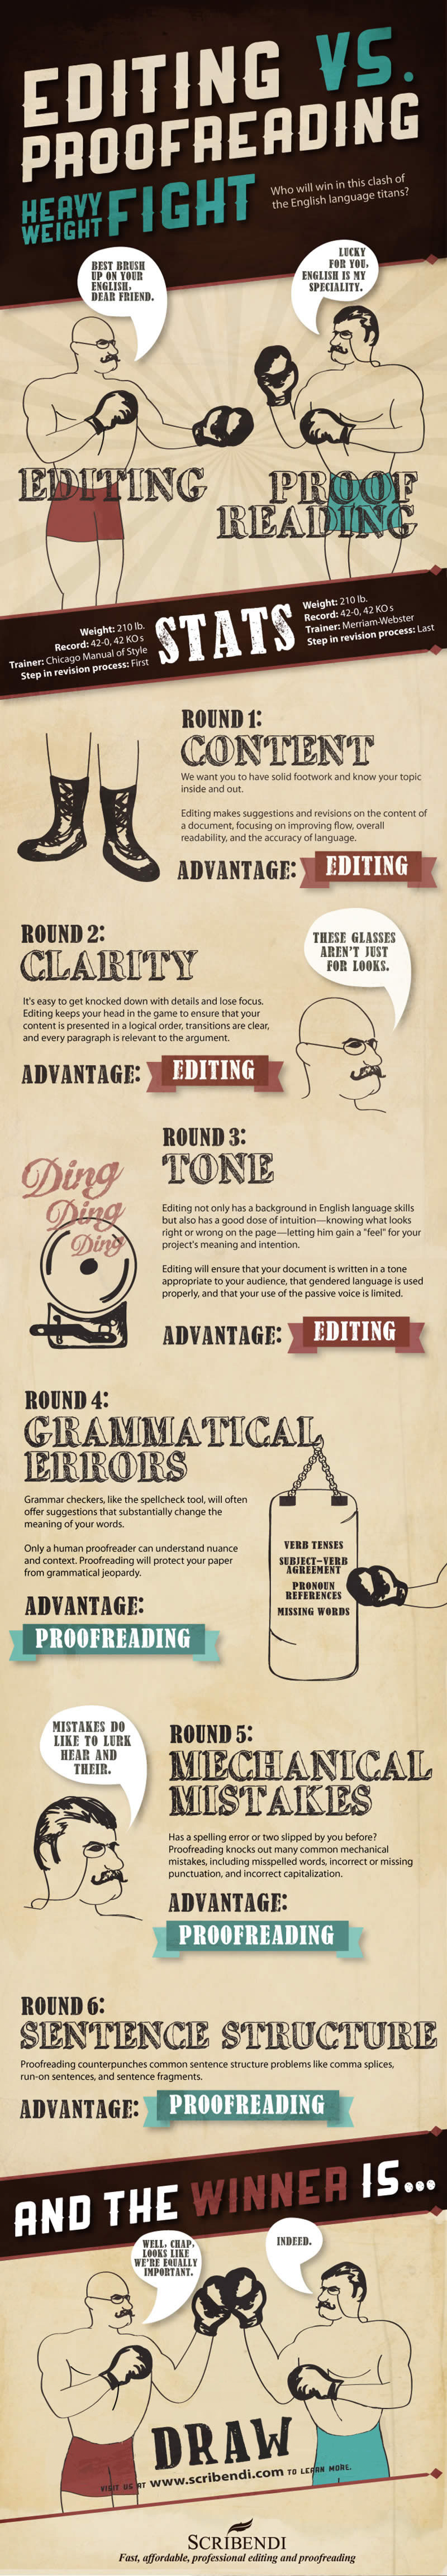 Looking for a professional proofreader?